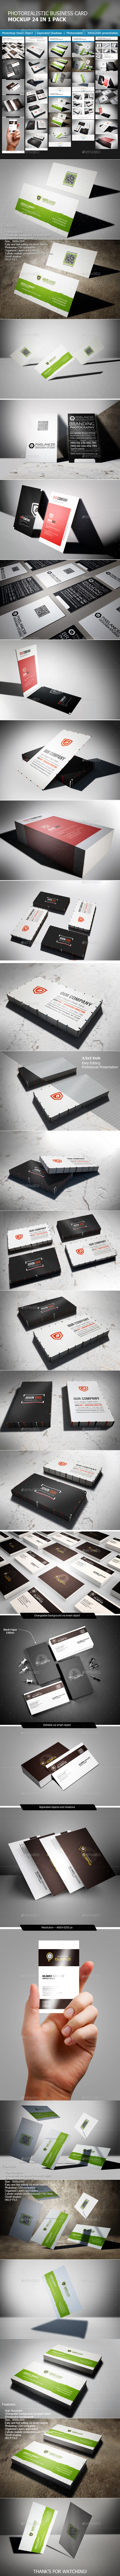 GraphicRiver Business Card 24 in 1 Bundle 11530204